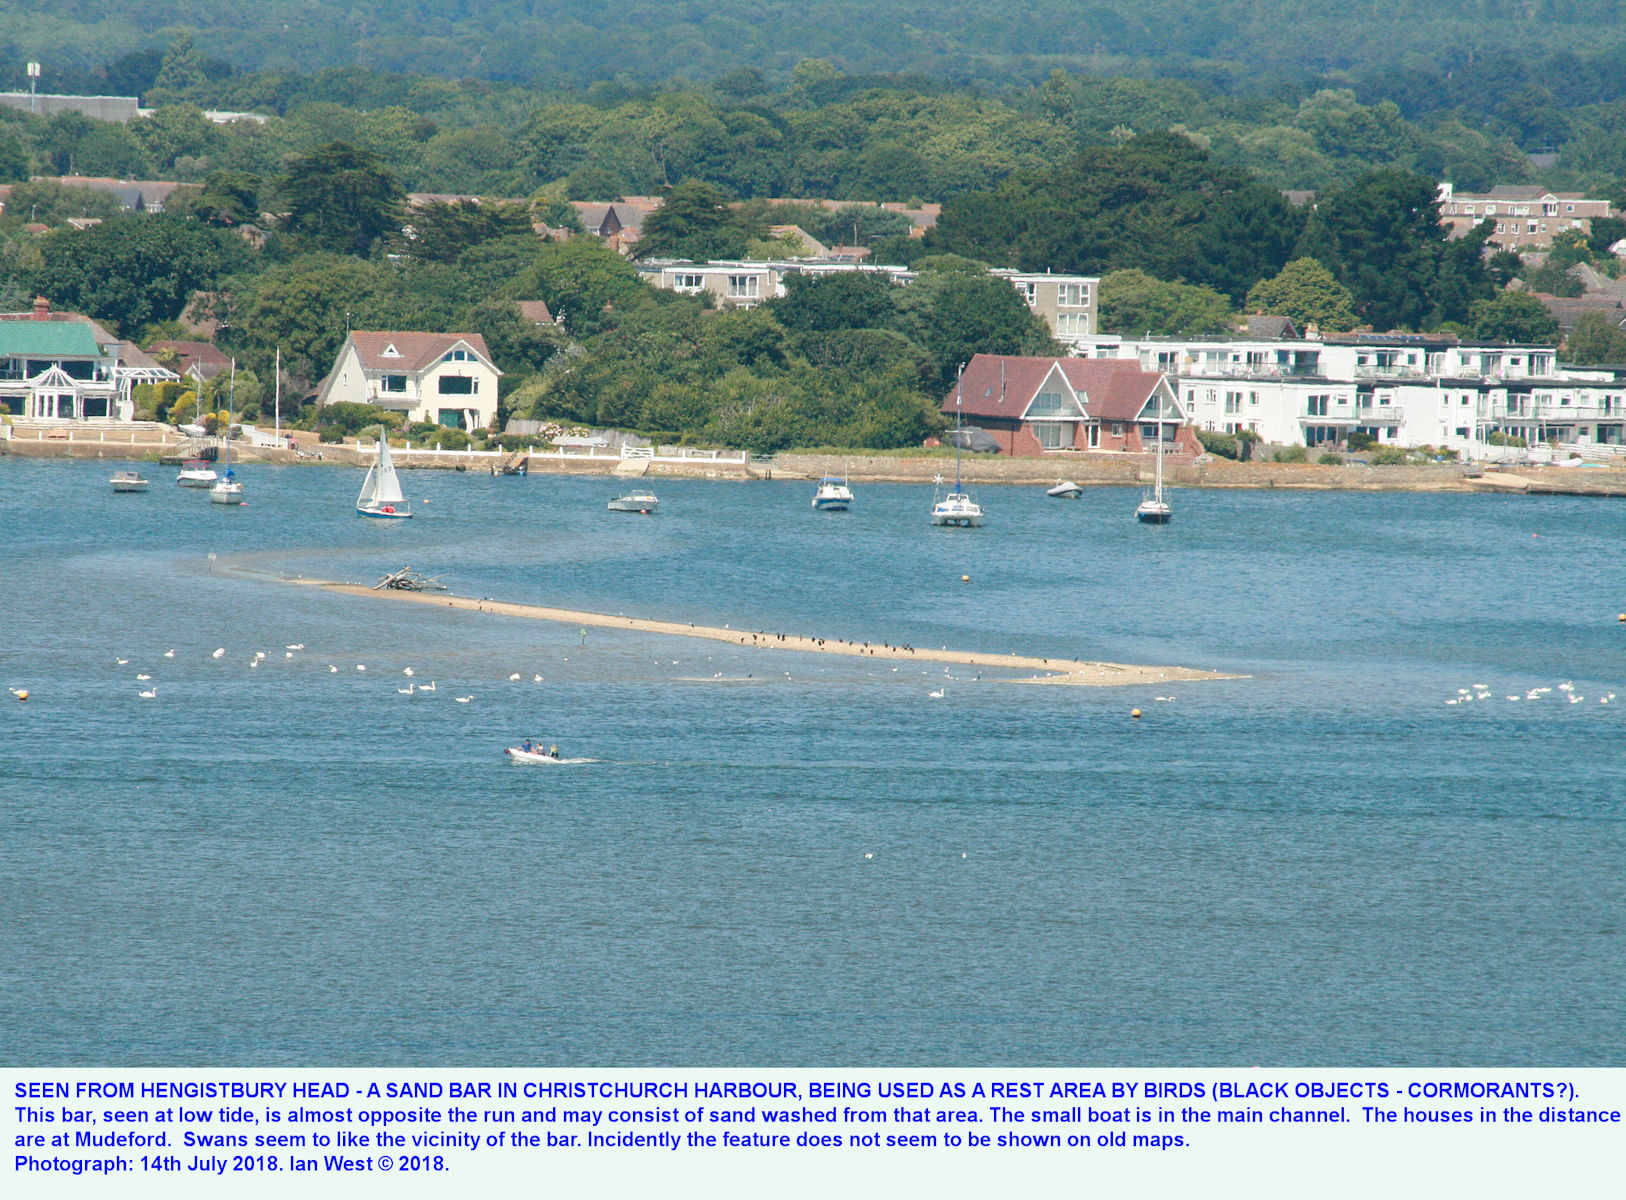 View from Hengistbury Head to Christchurch Harbour, showing a sand bar with cormorants - this is a distant scene enlarged